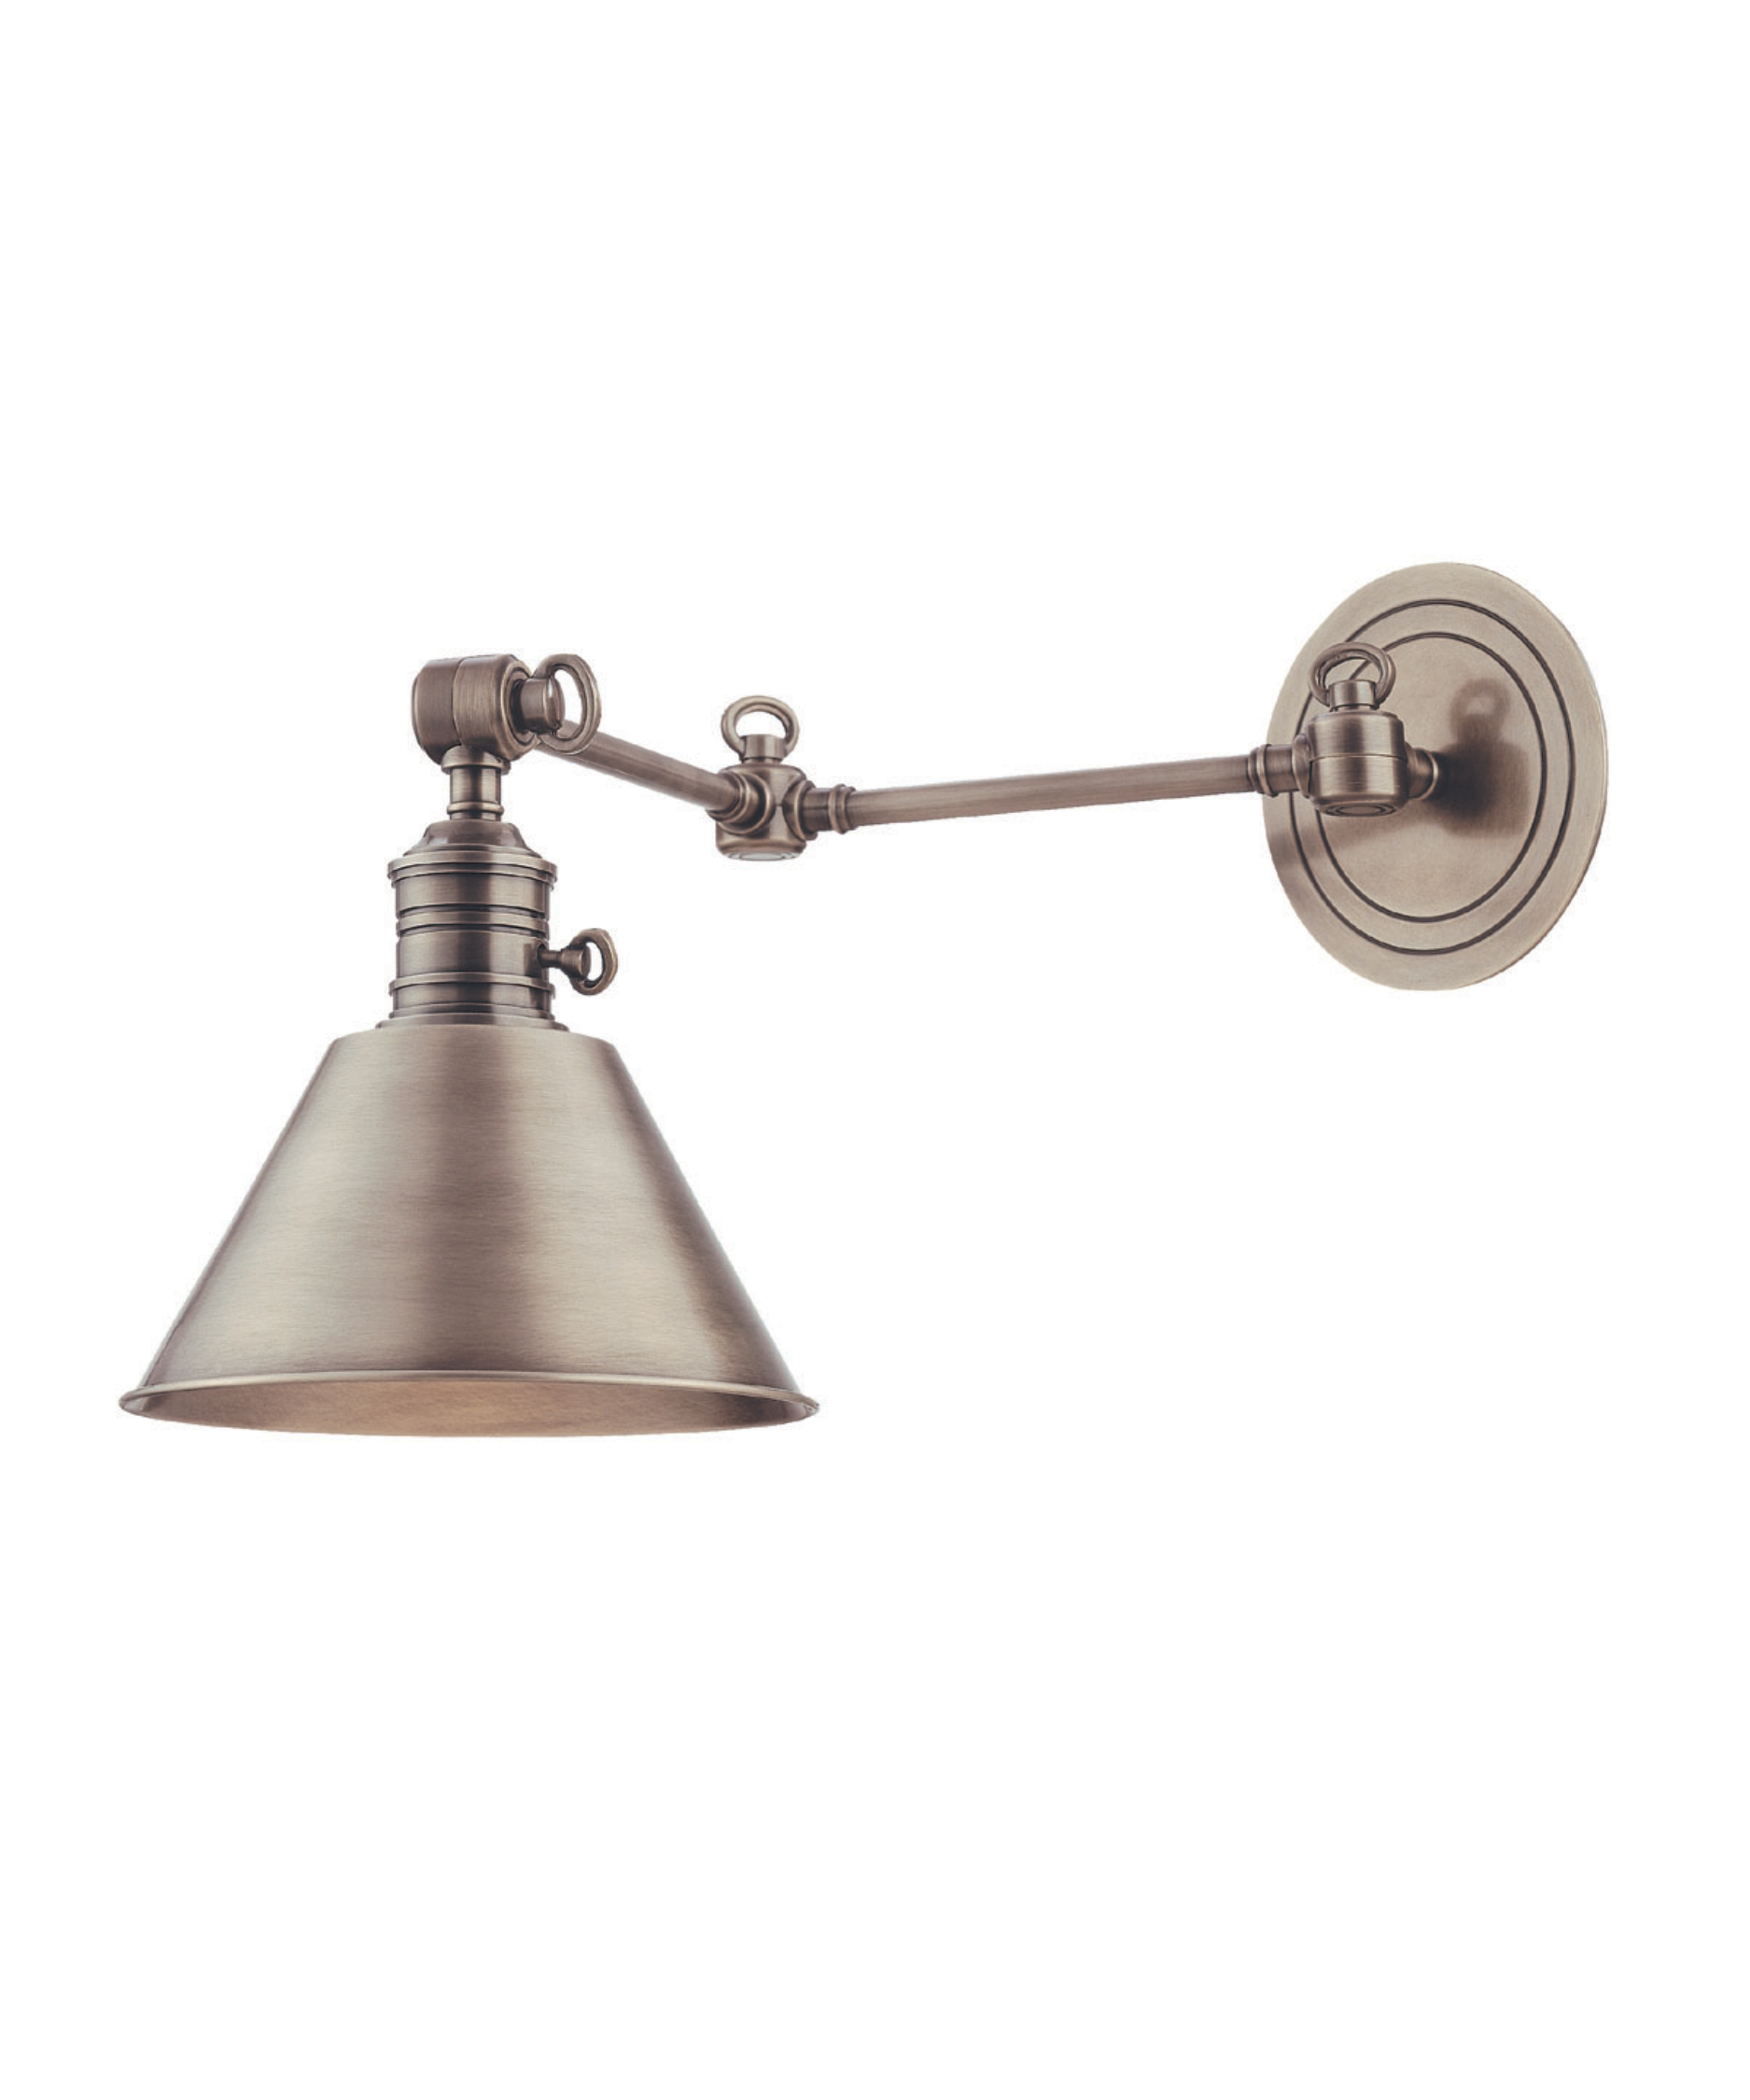 Plug In Wall Lamp Aztec Lighting 1light Brushed Nickel